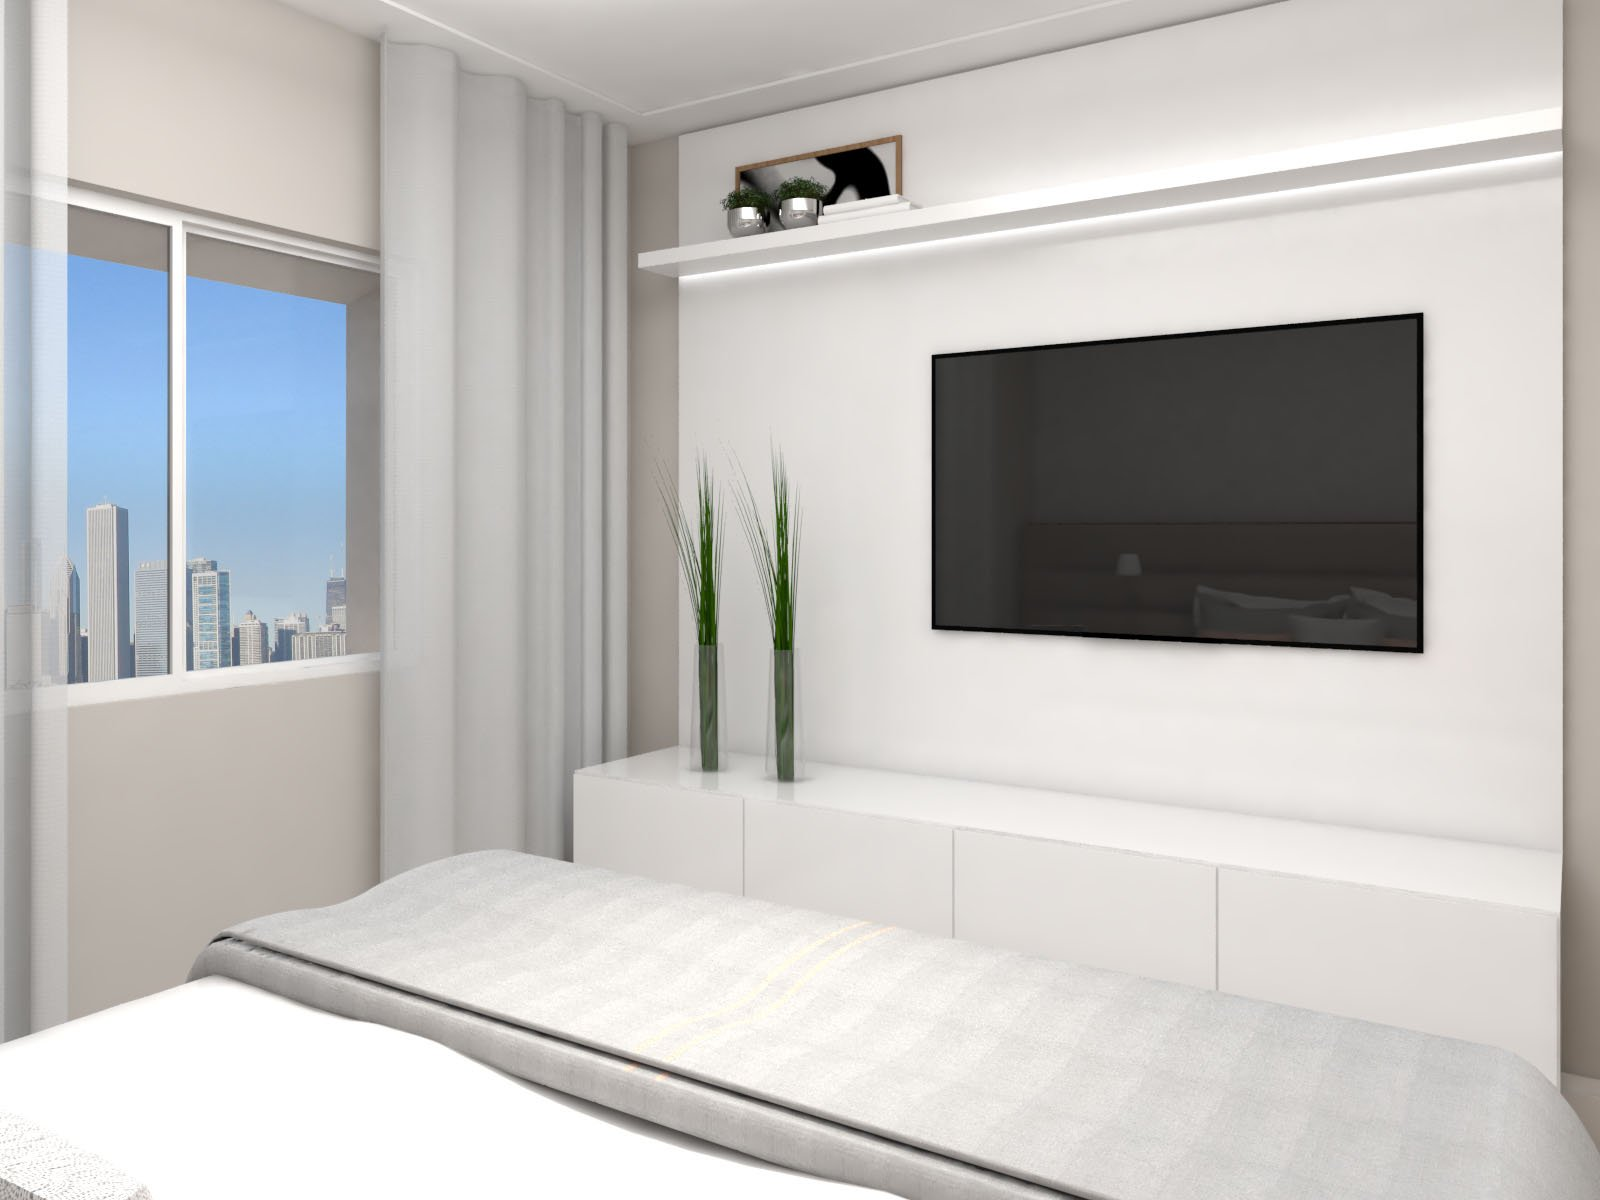 desktop_master_bedroom1.jpg